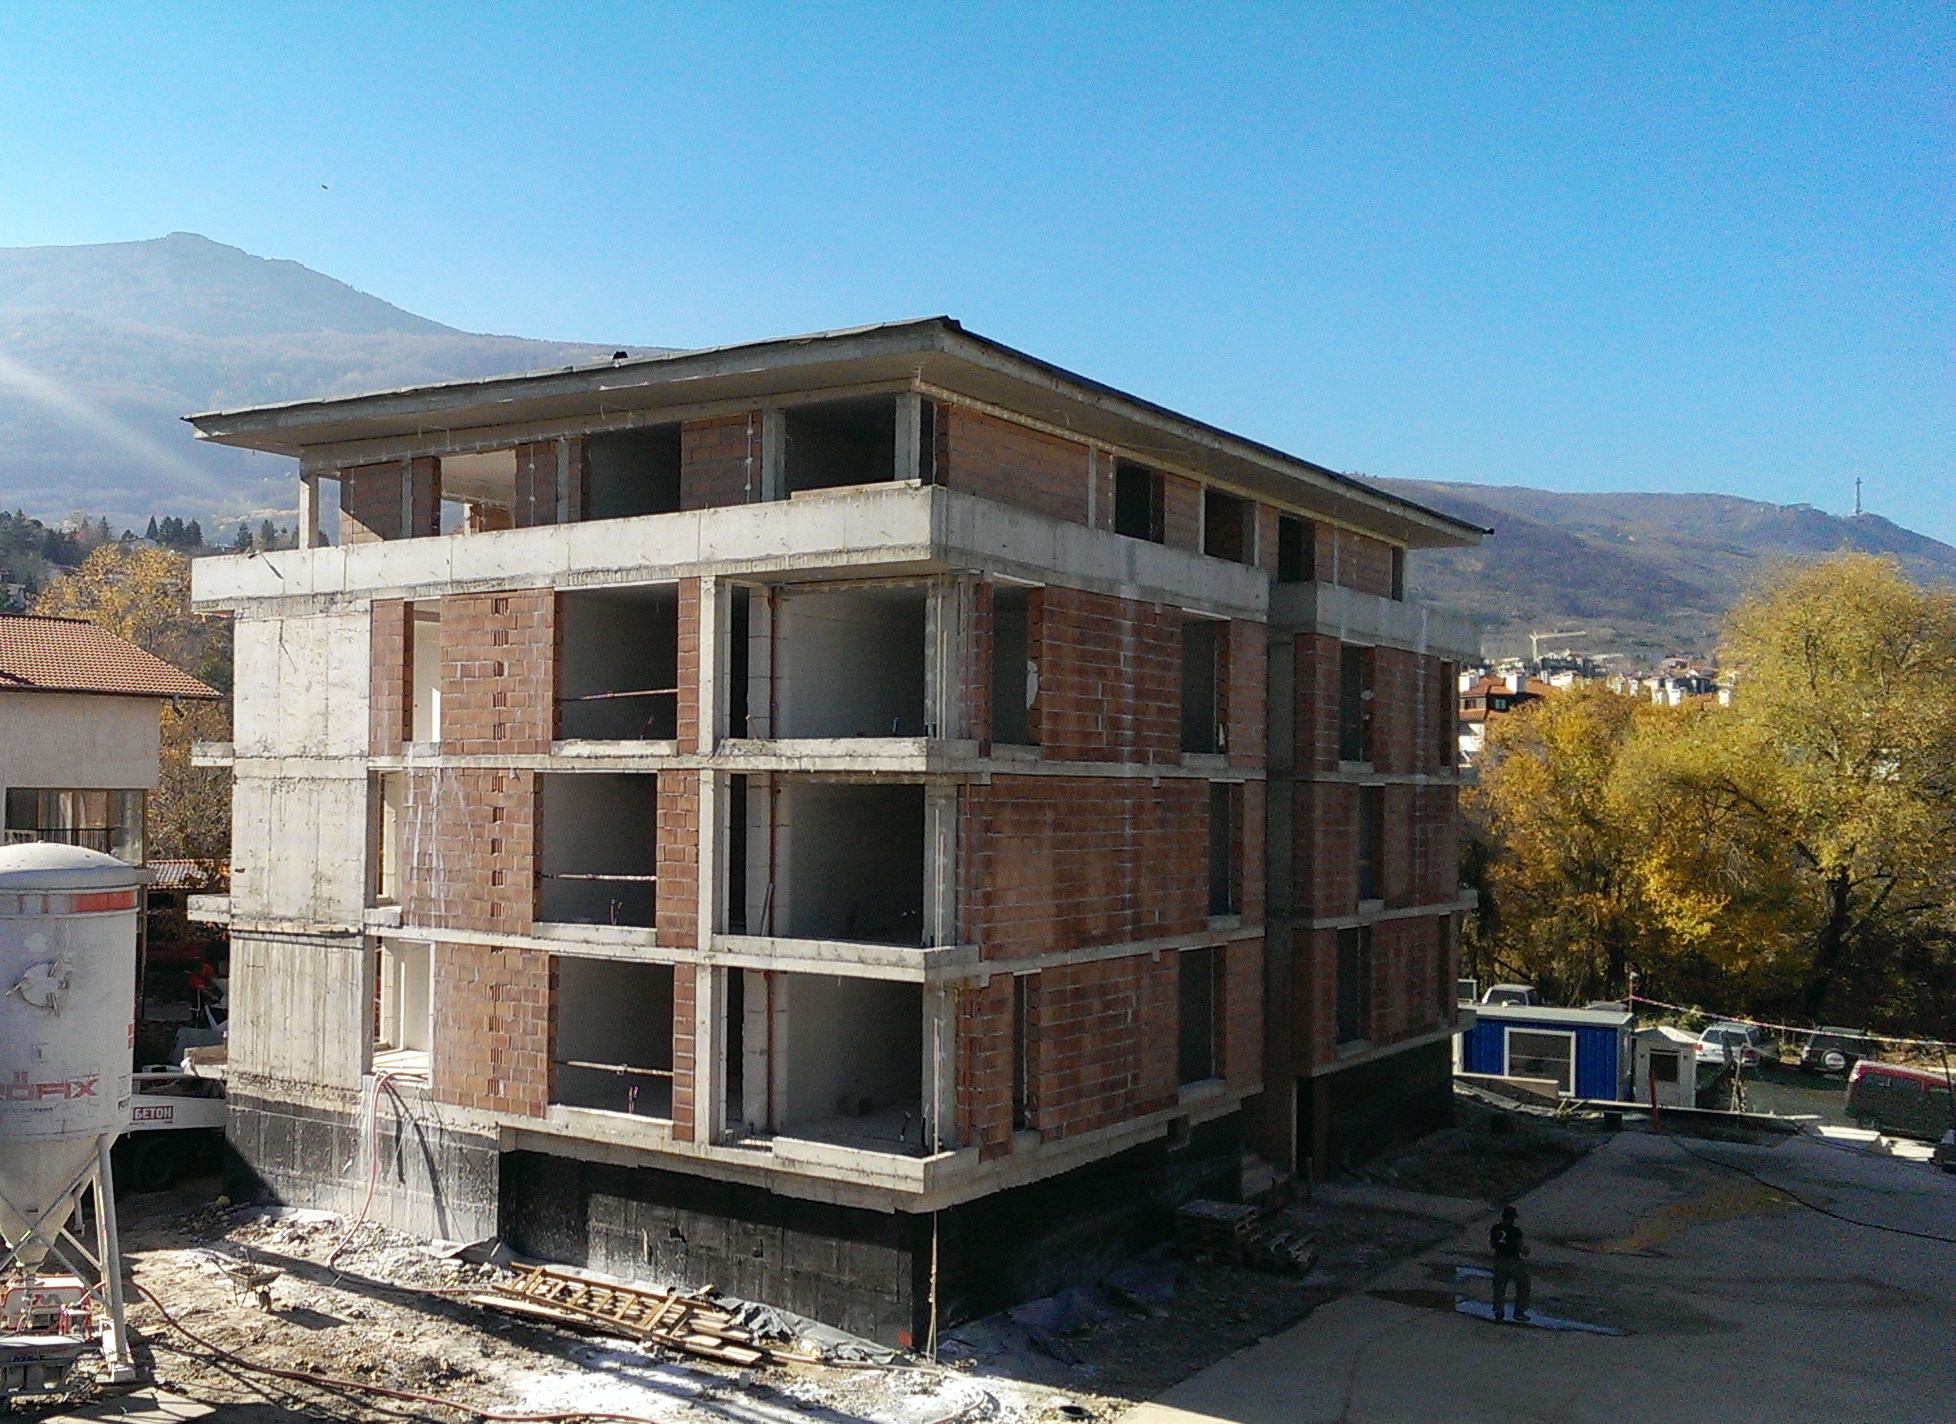 construction 12.11.2015.  Building 5